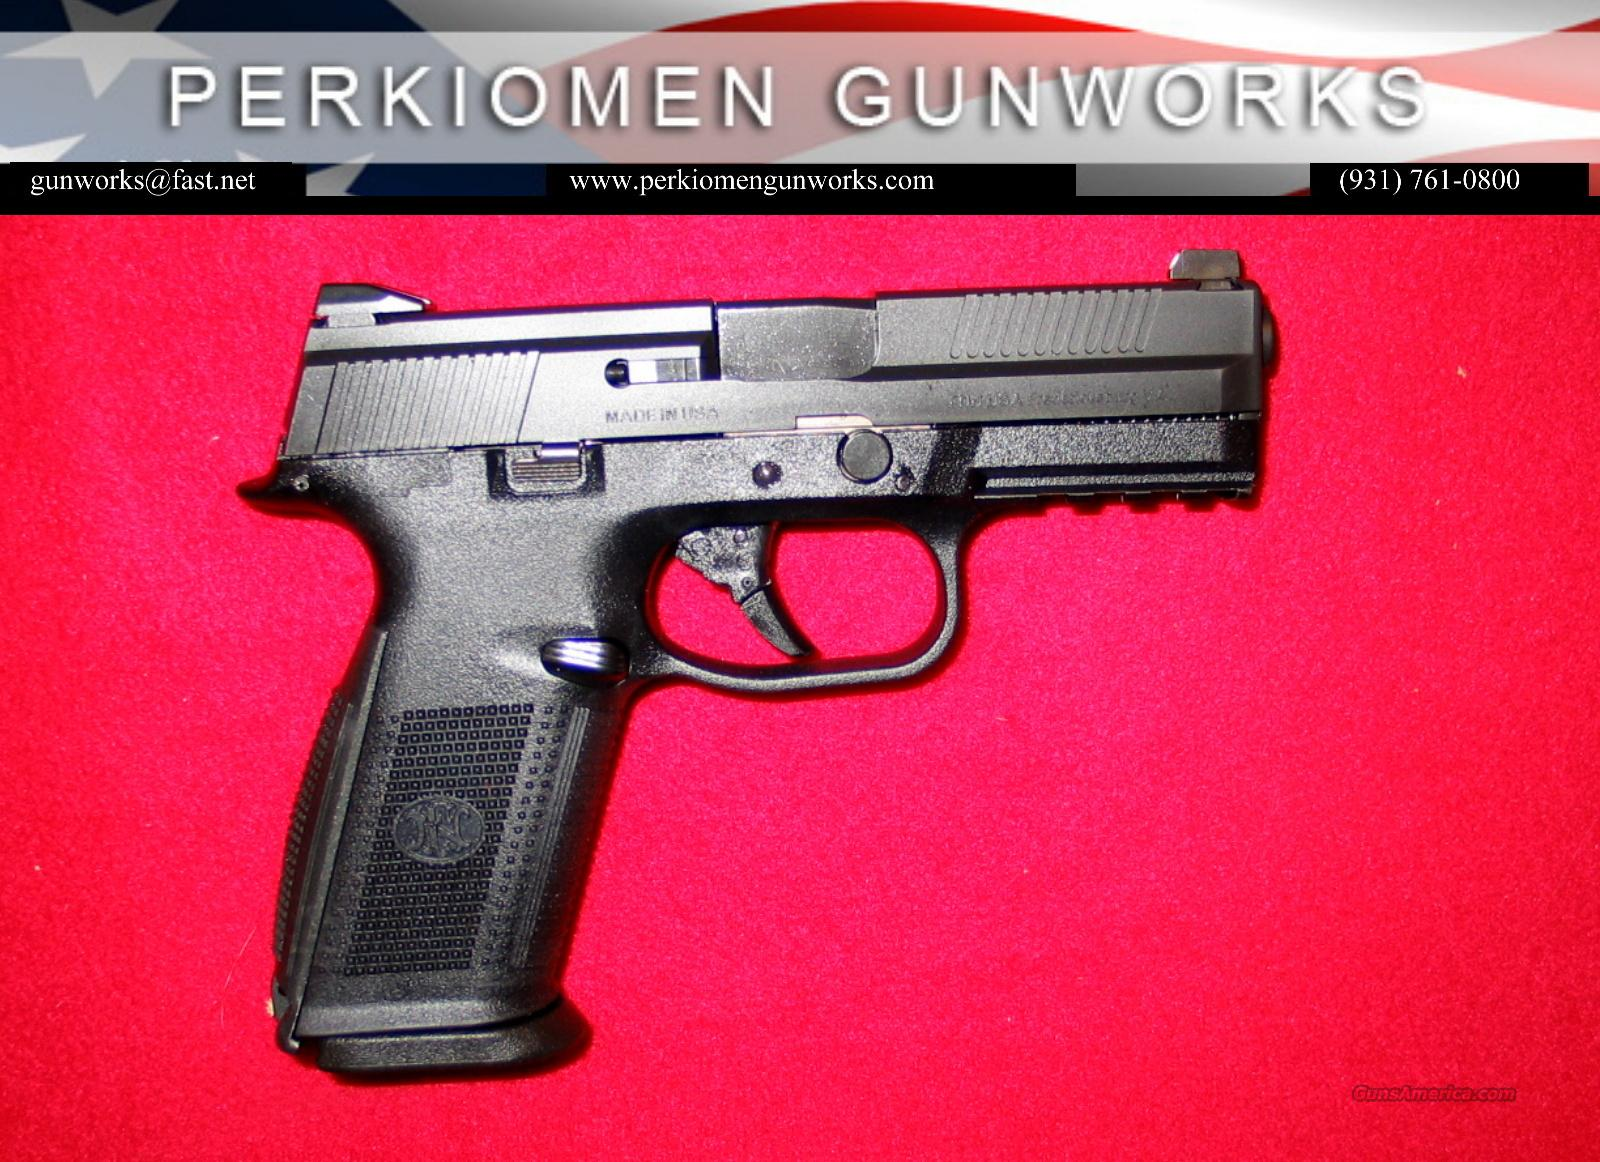 FNS-9-B-NS, 9mm w/Night sights, 3-17 rd mags - NIB  Guns > Pistols > FNH - Fabrique Nationale (FN) Pistols > FNP